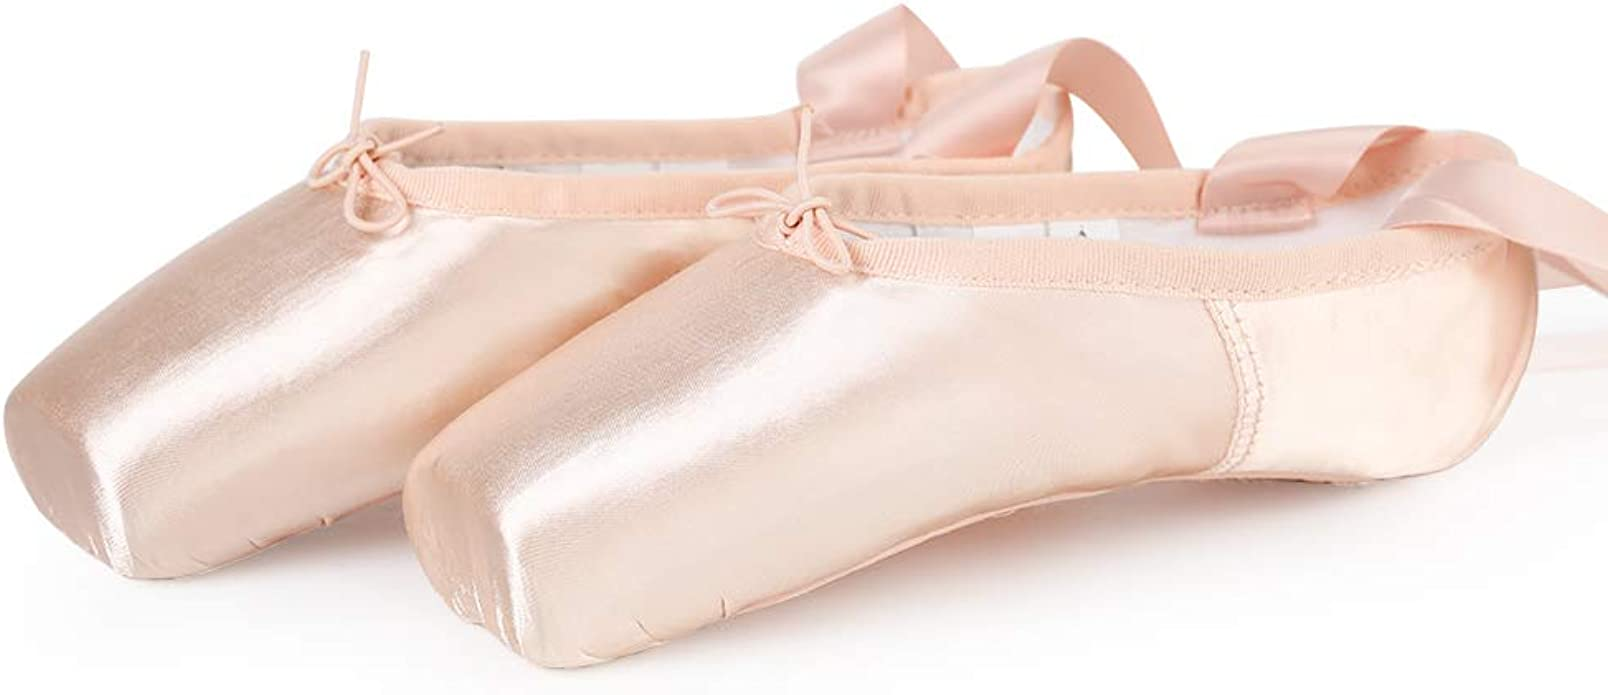 Ballet Pointe Shoes Satin Professional Dance Shoes with Silicone ...